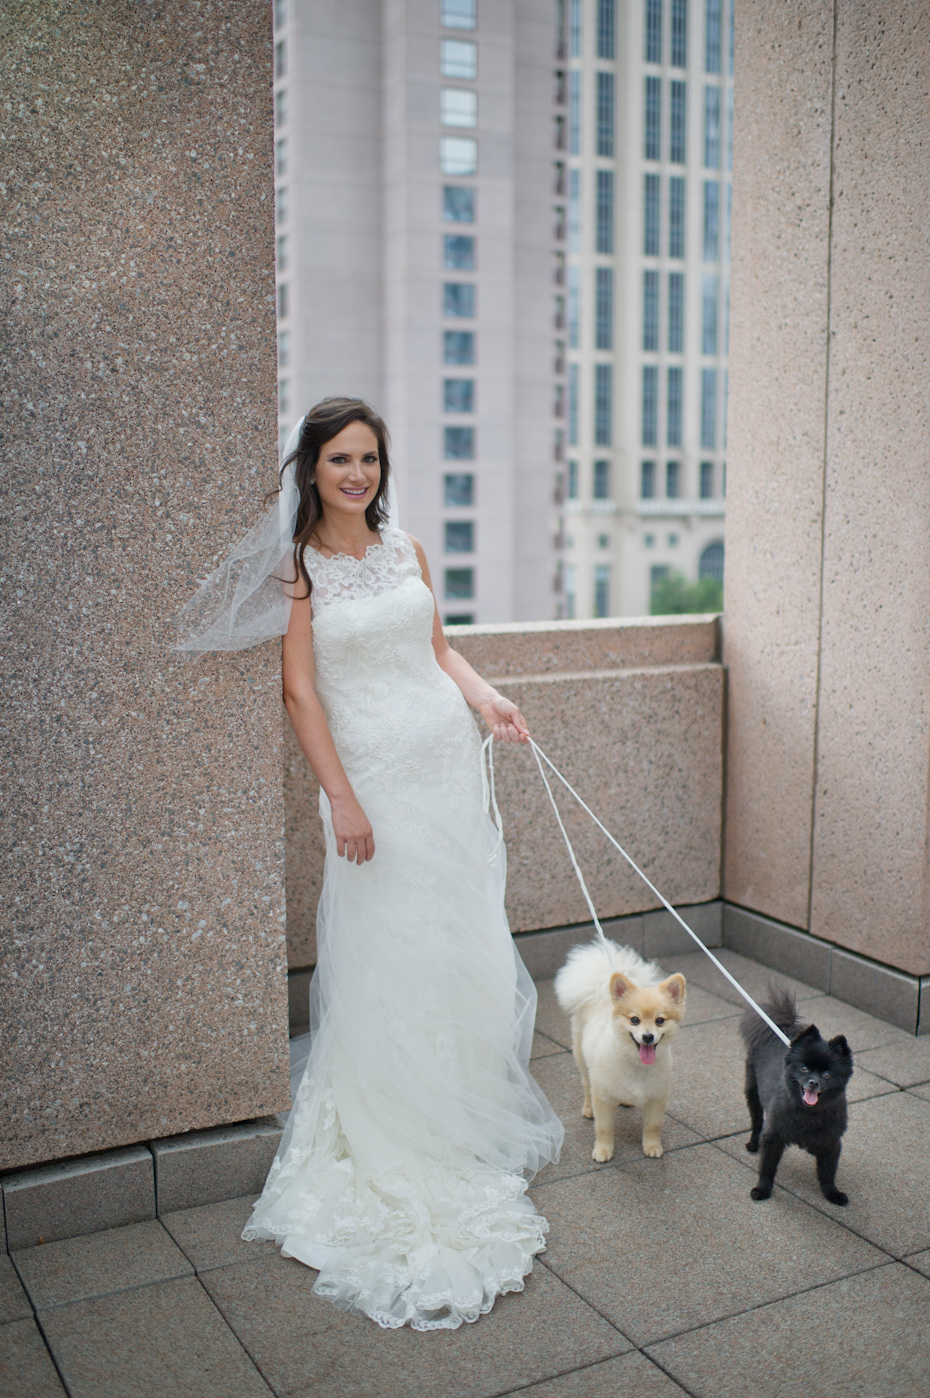 Dogs in Bridal Portrait